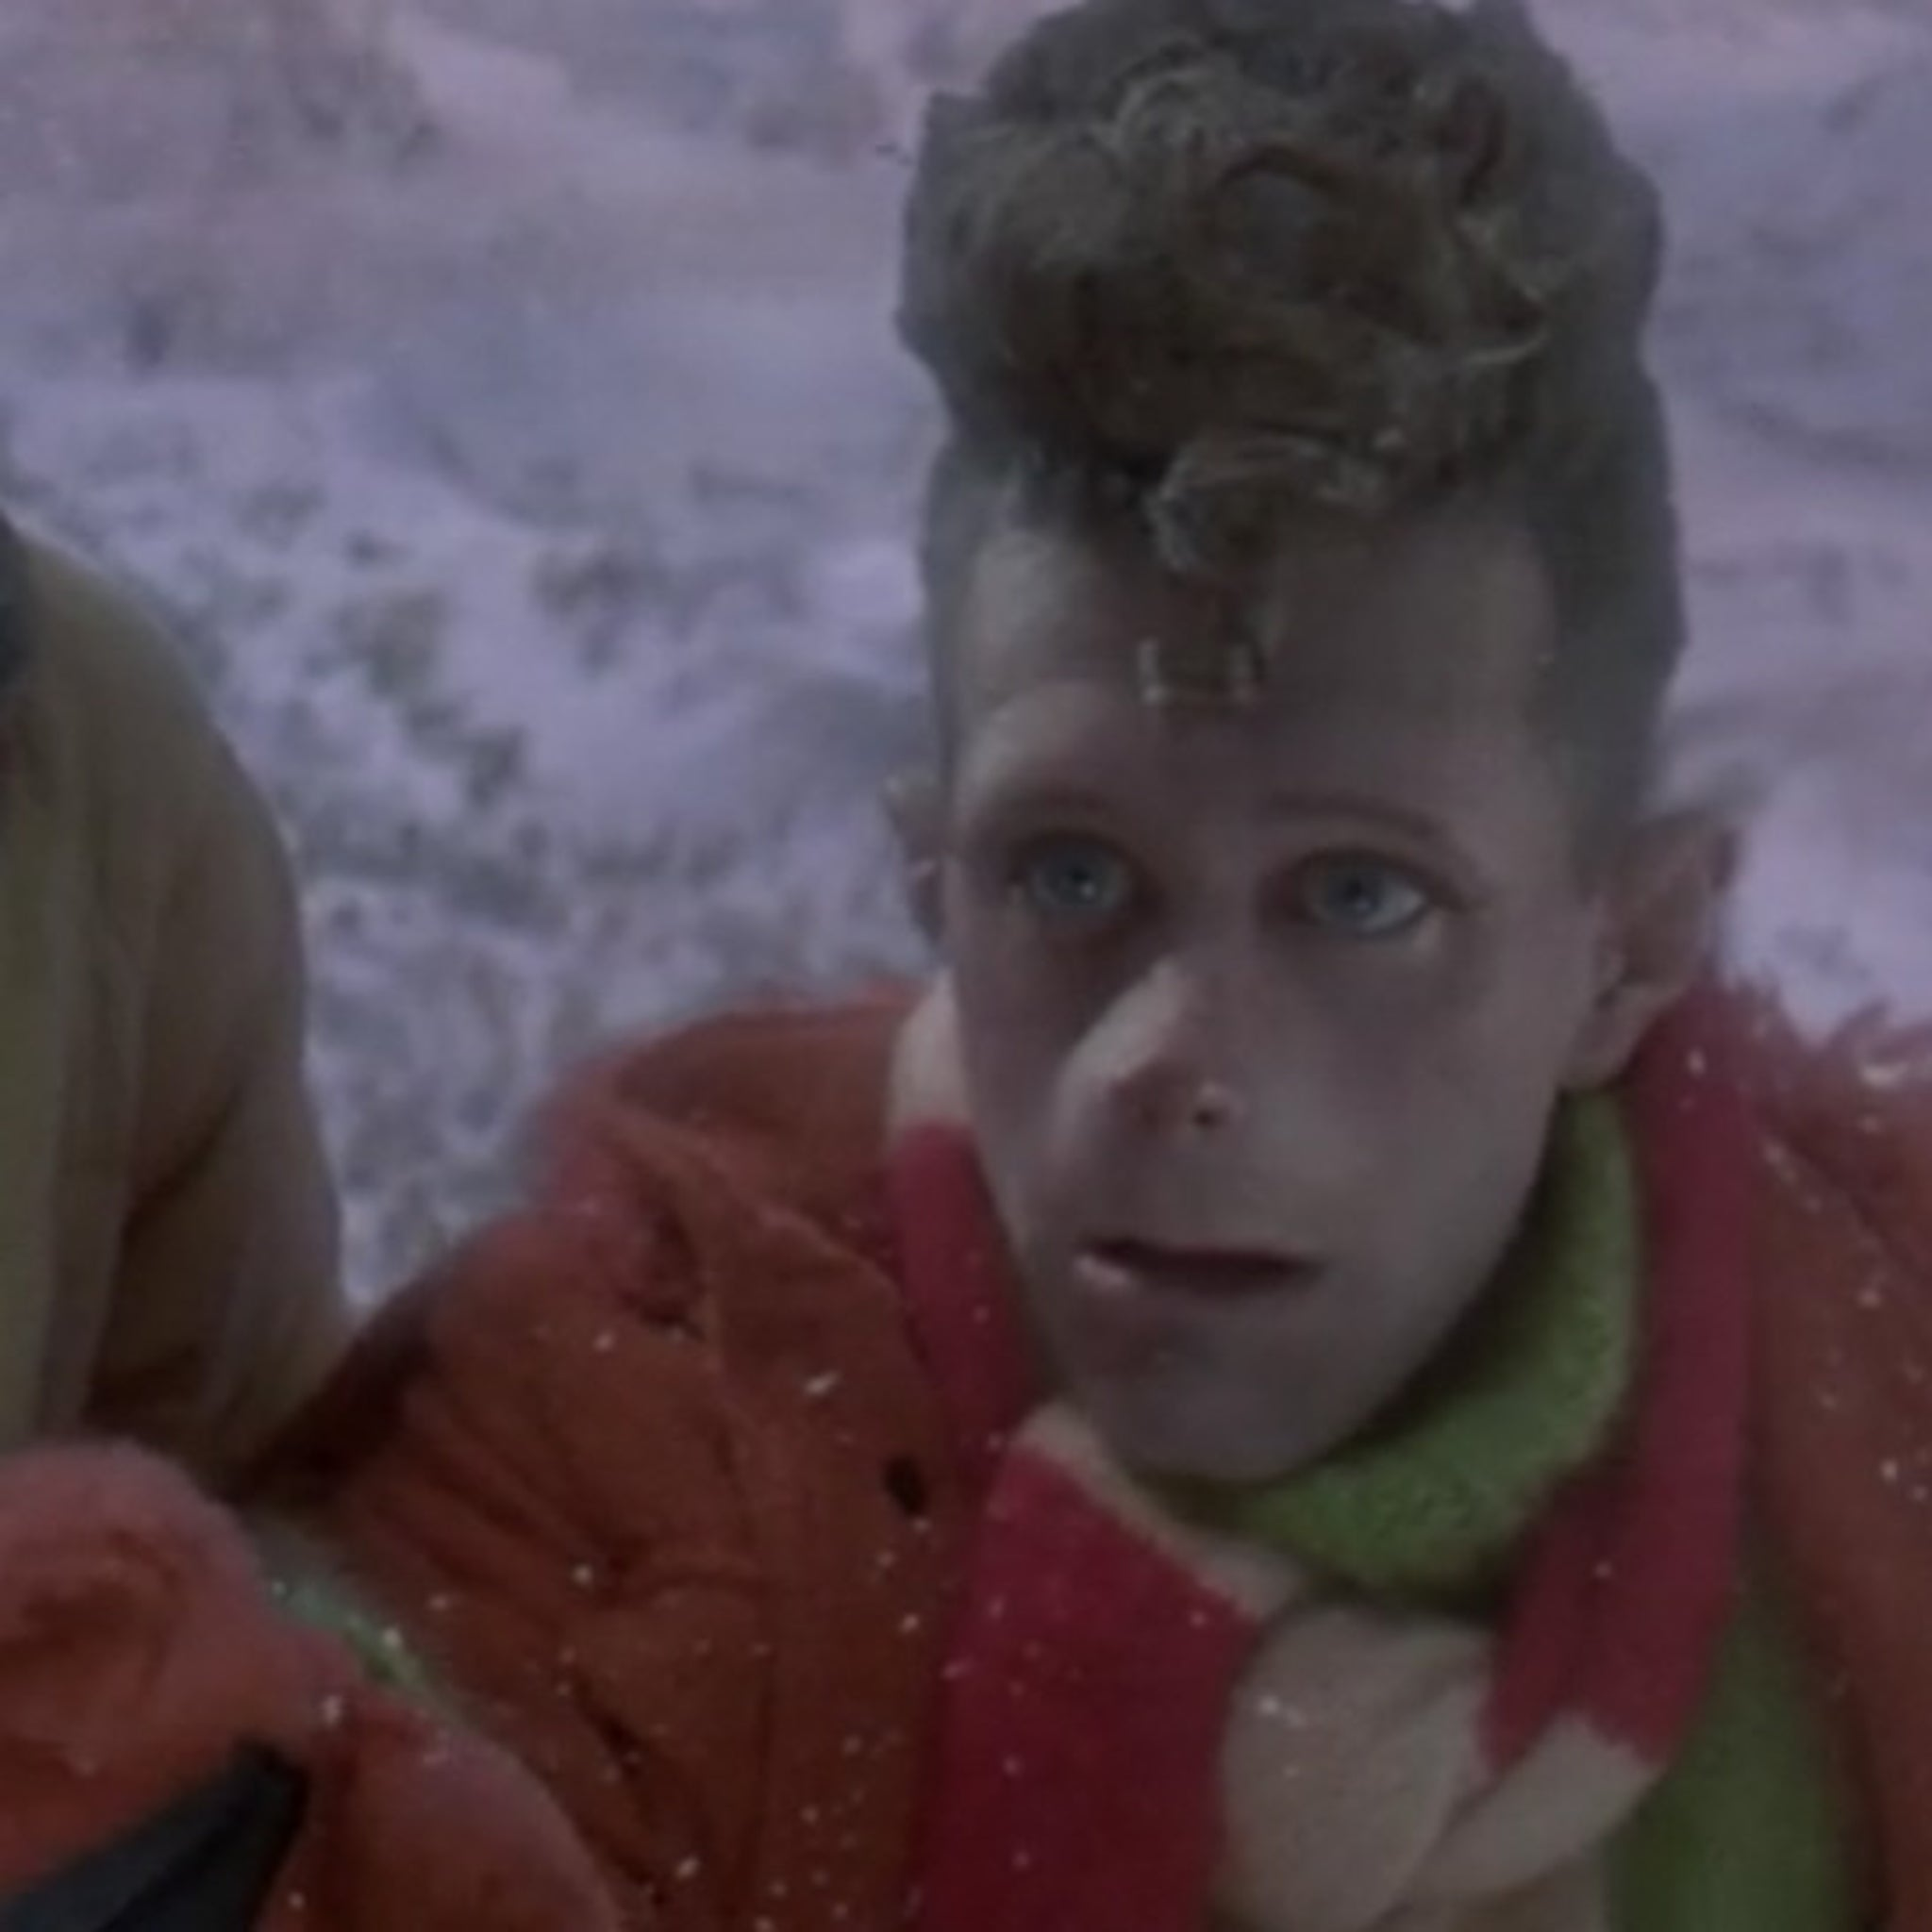 How The Grinch Stole Christmas Movie Whos.Stu Lou Who In How The Grinch Stole Christmas Memba Him